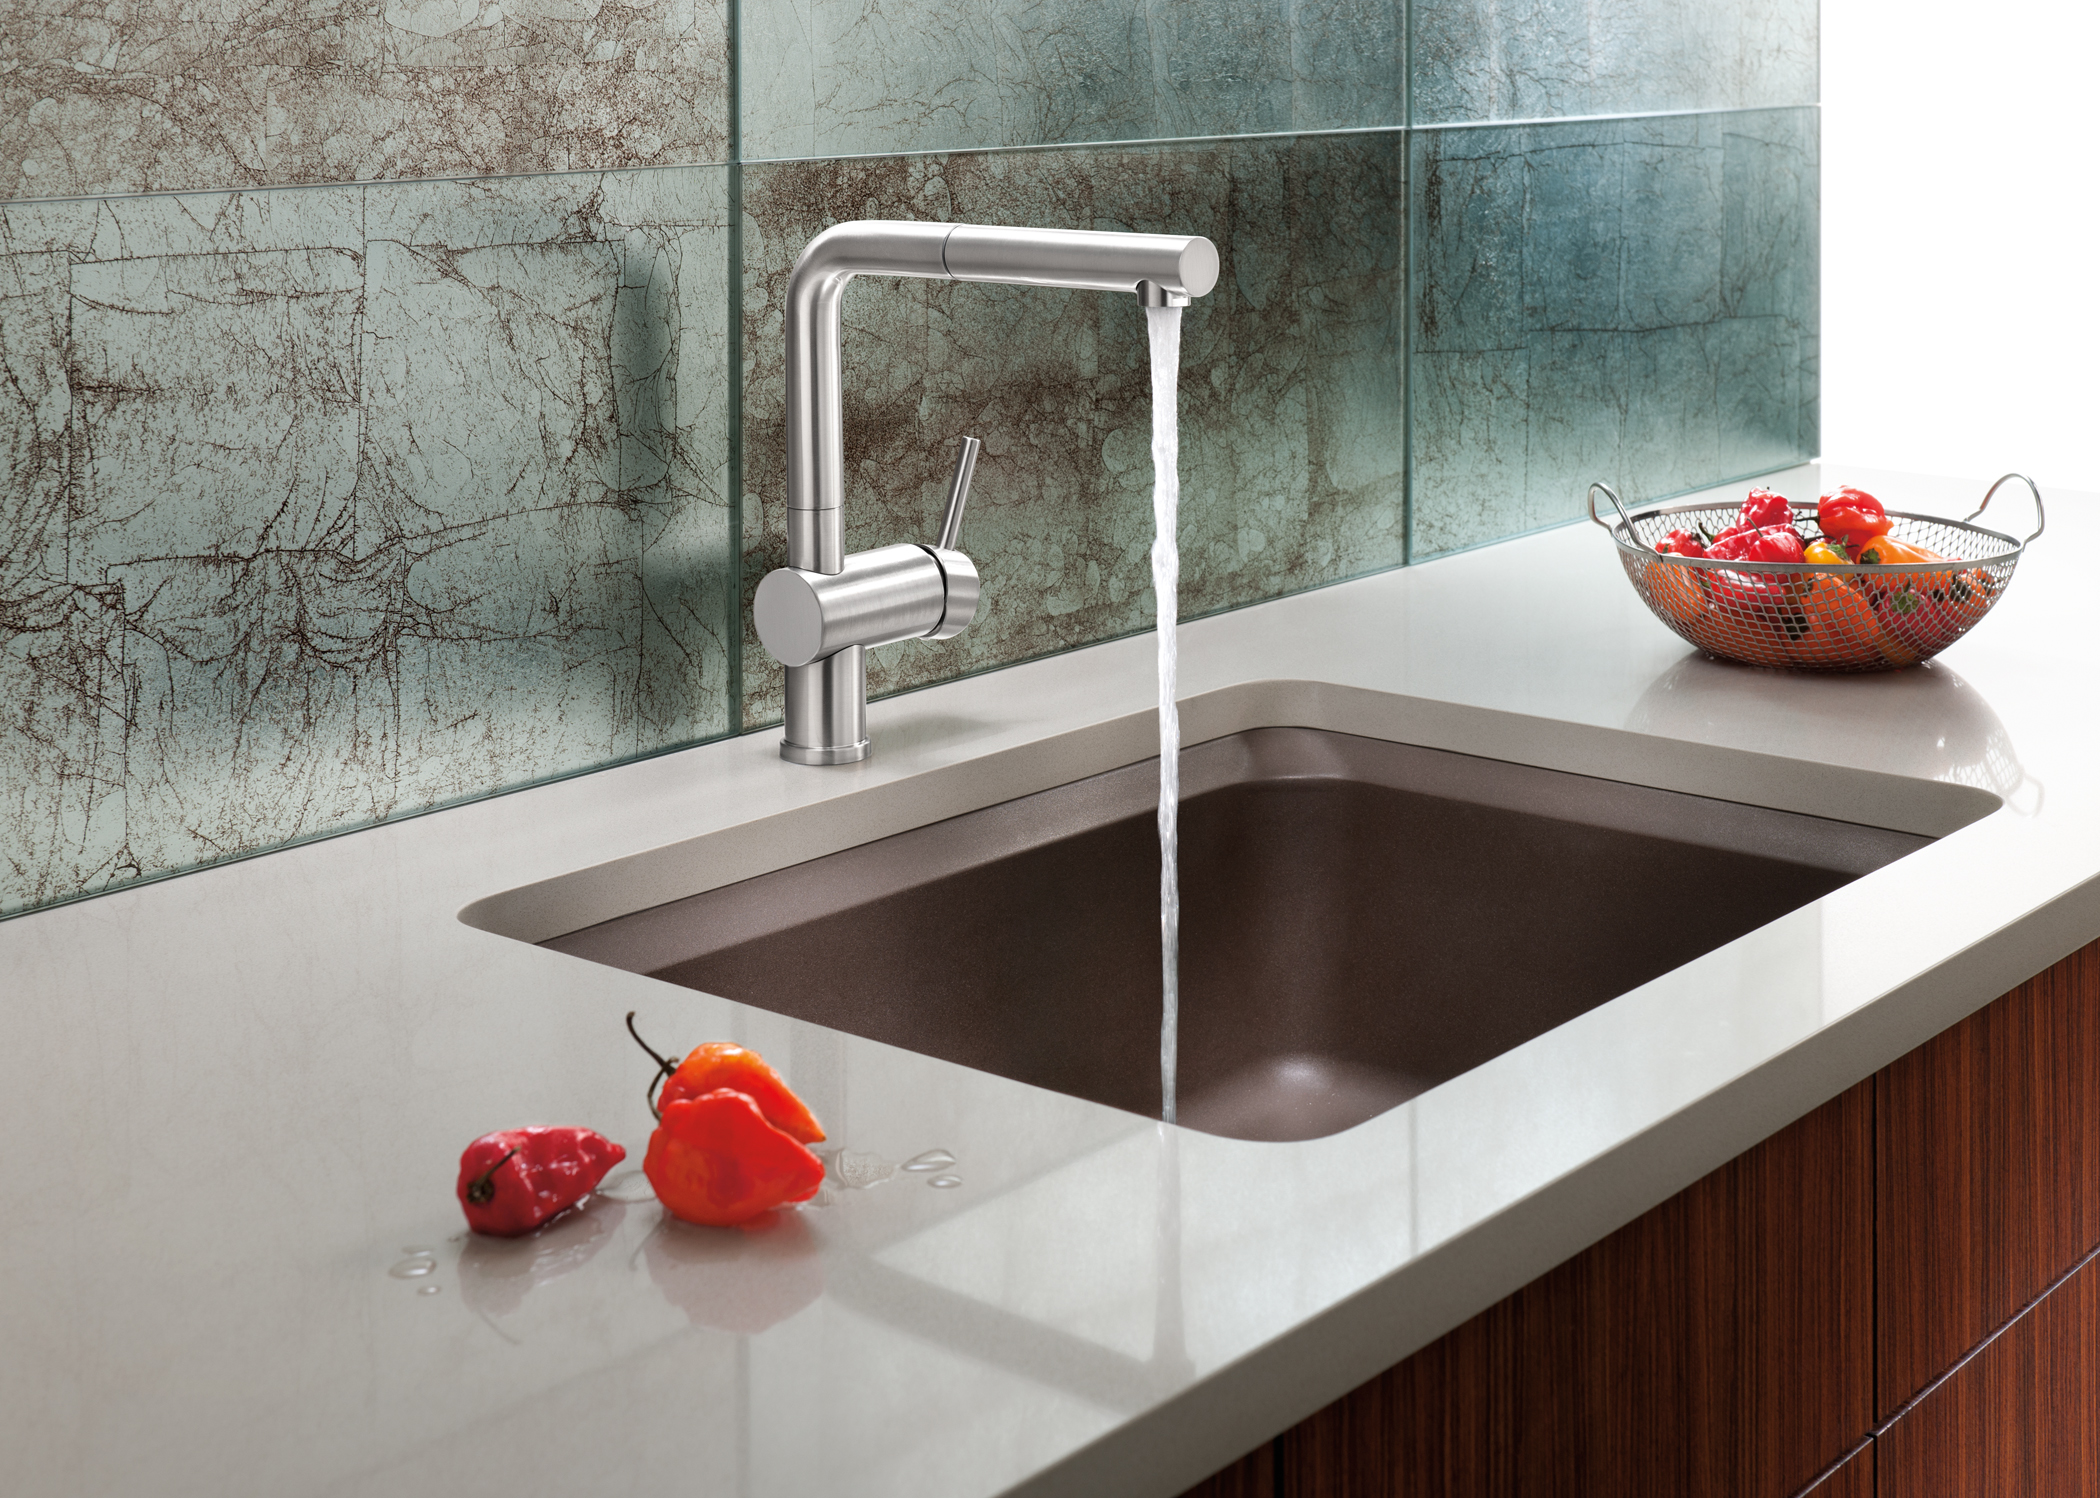 The new blanco silgranit ii vision designer kitchen sink offers luxurious usability at great - Designer sink image ...